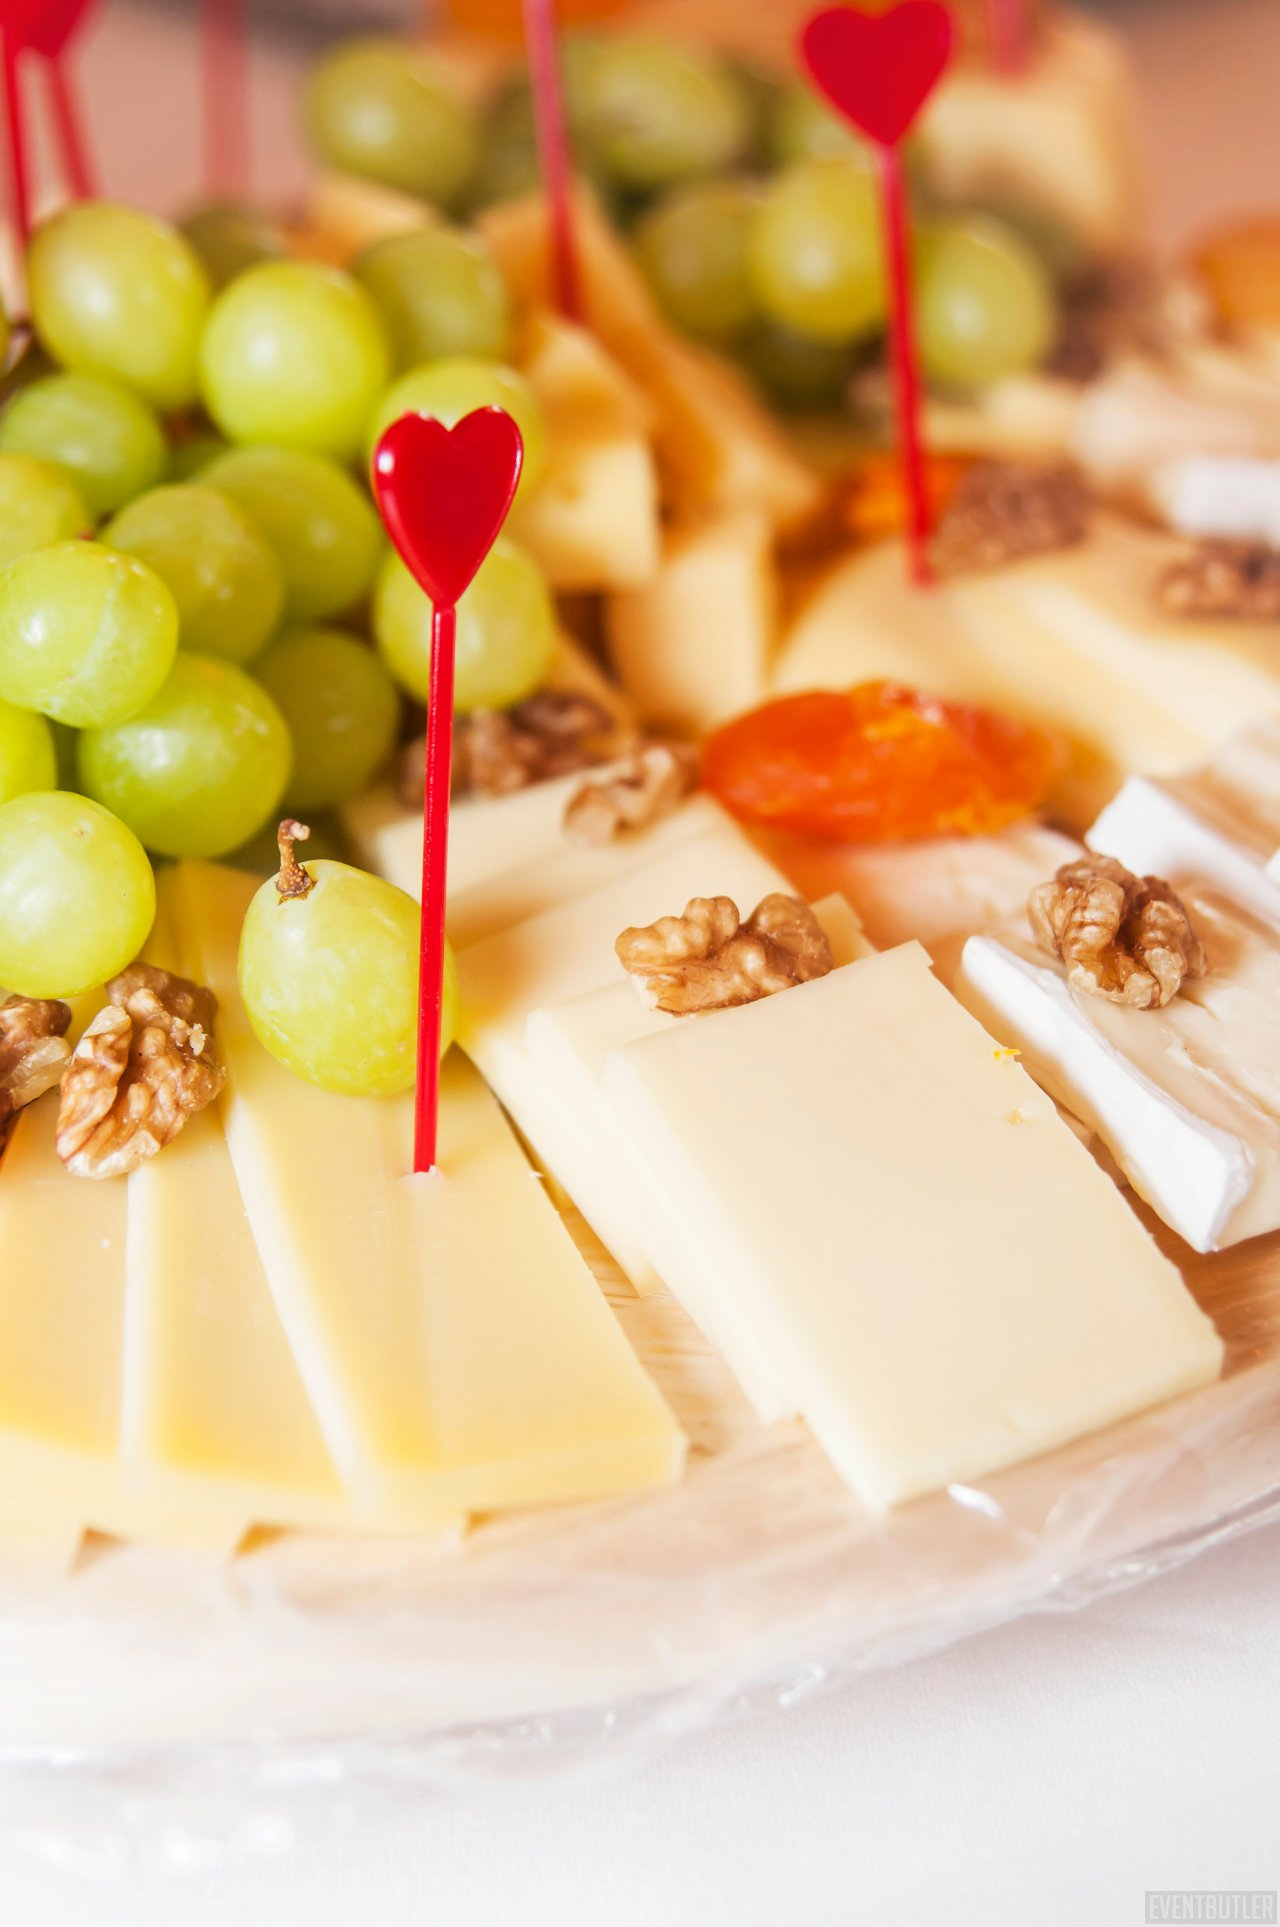 Brisolée-Catering - Catering & Lieferservice in Leuk-Stadt